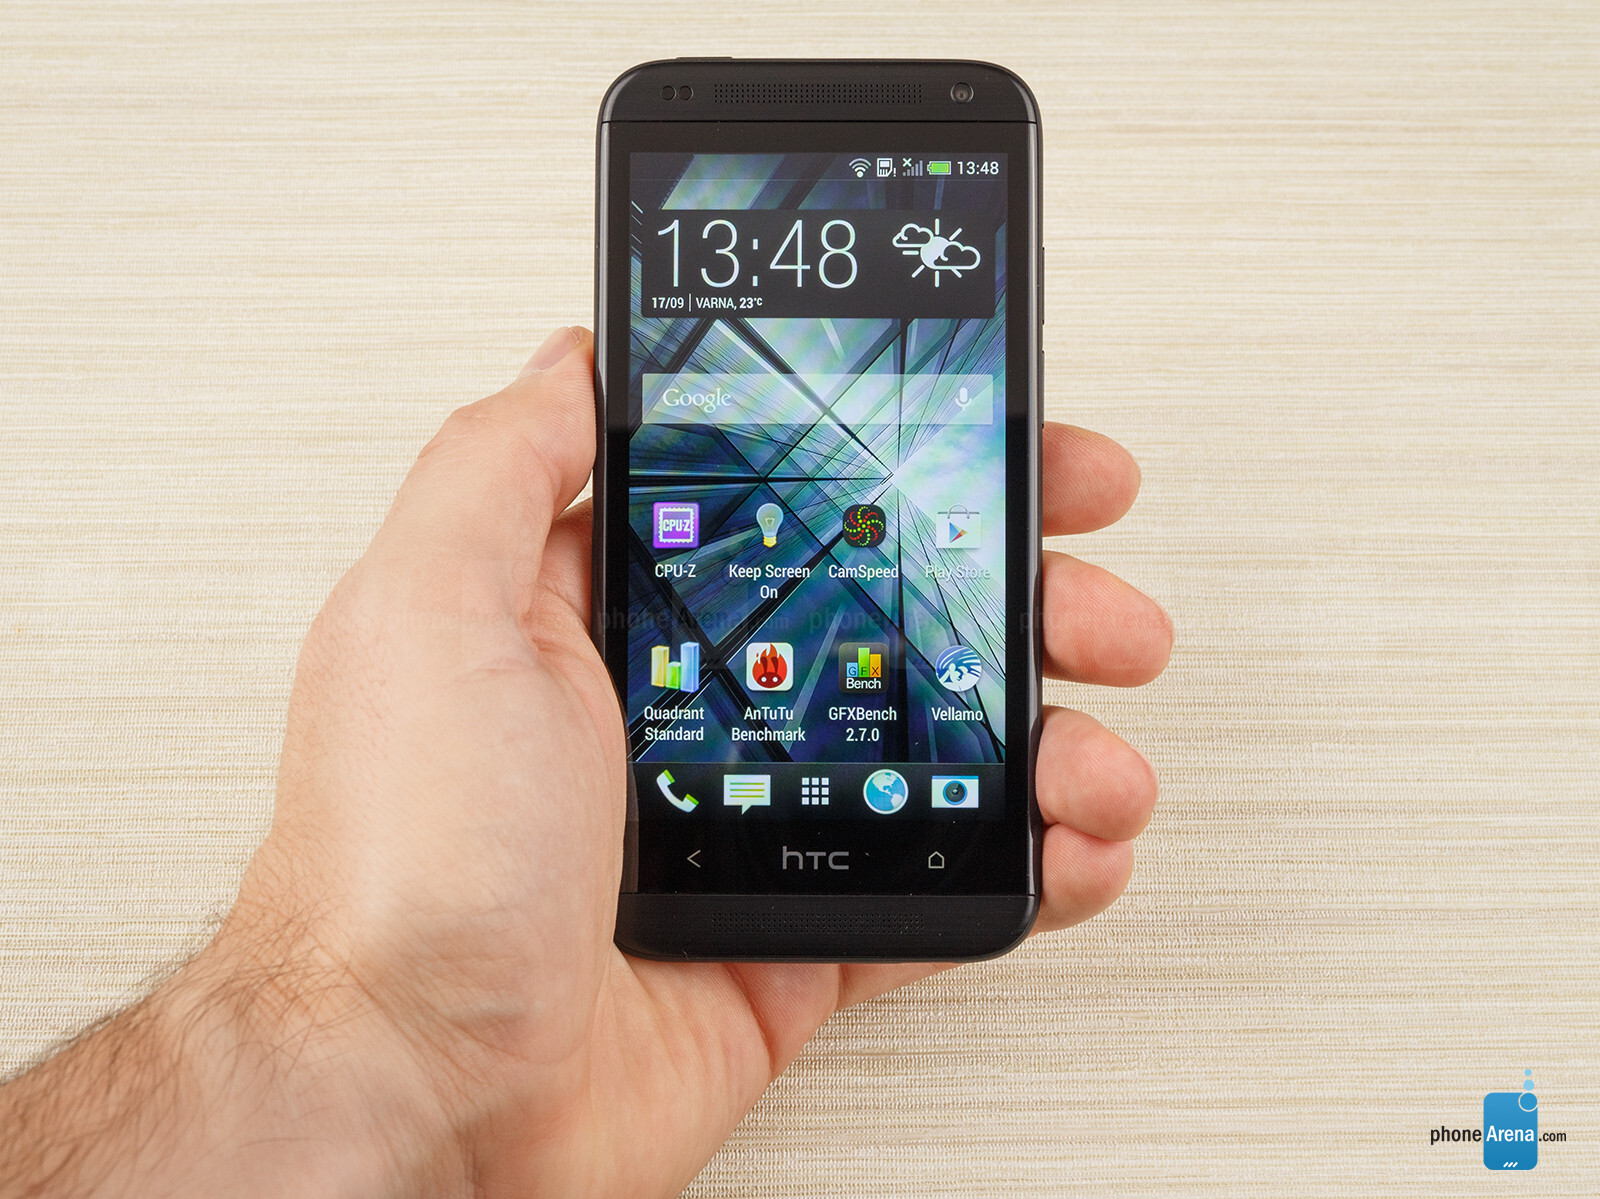 http://i-cdn.phonearena.com/images/reviews/140855-image/HTC-Desire-601-Review-008.jpg